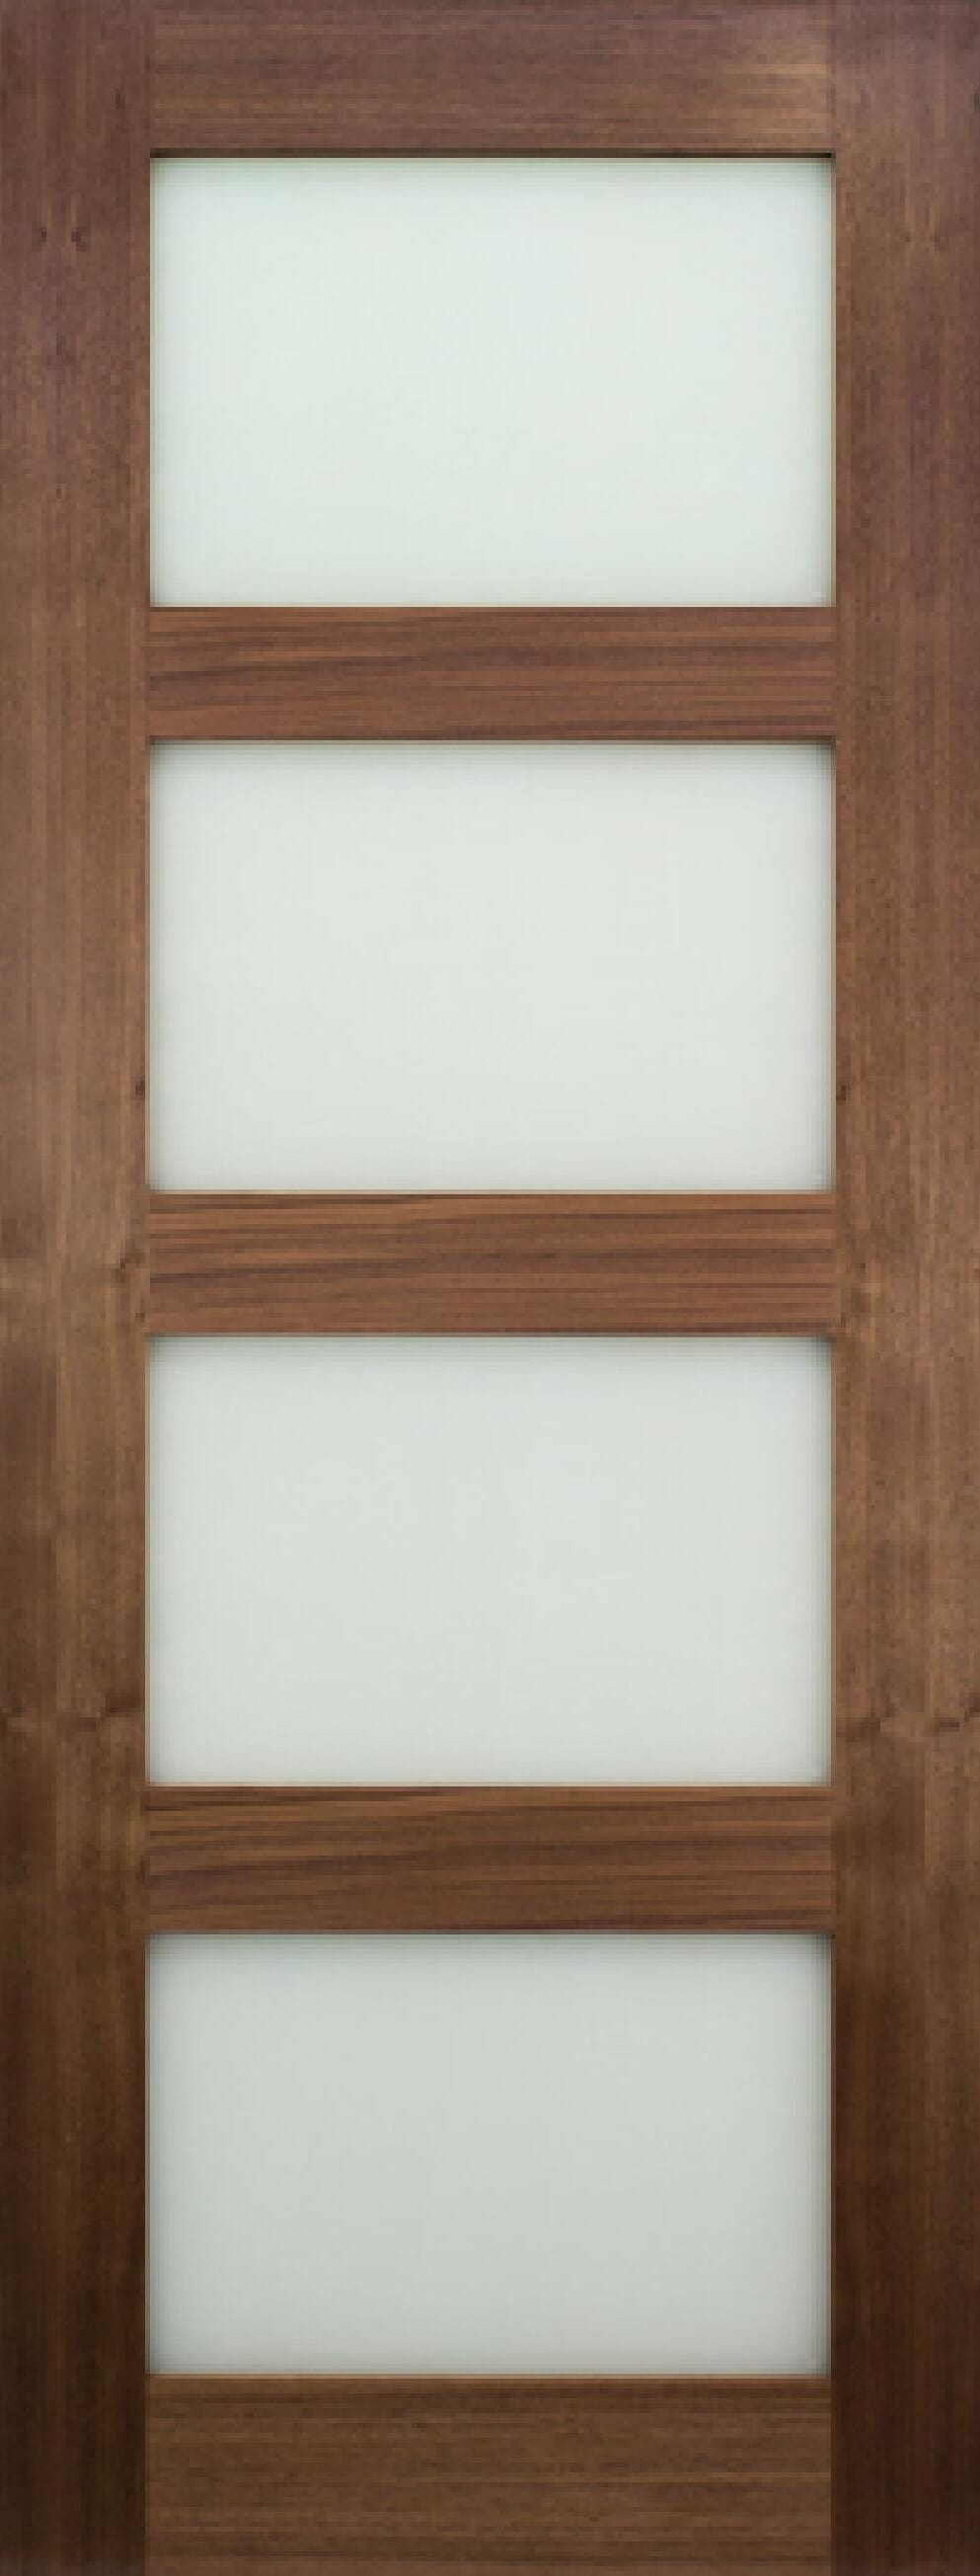 Coventry Walnut Glazed - Frosted Prefinished Image